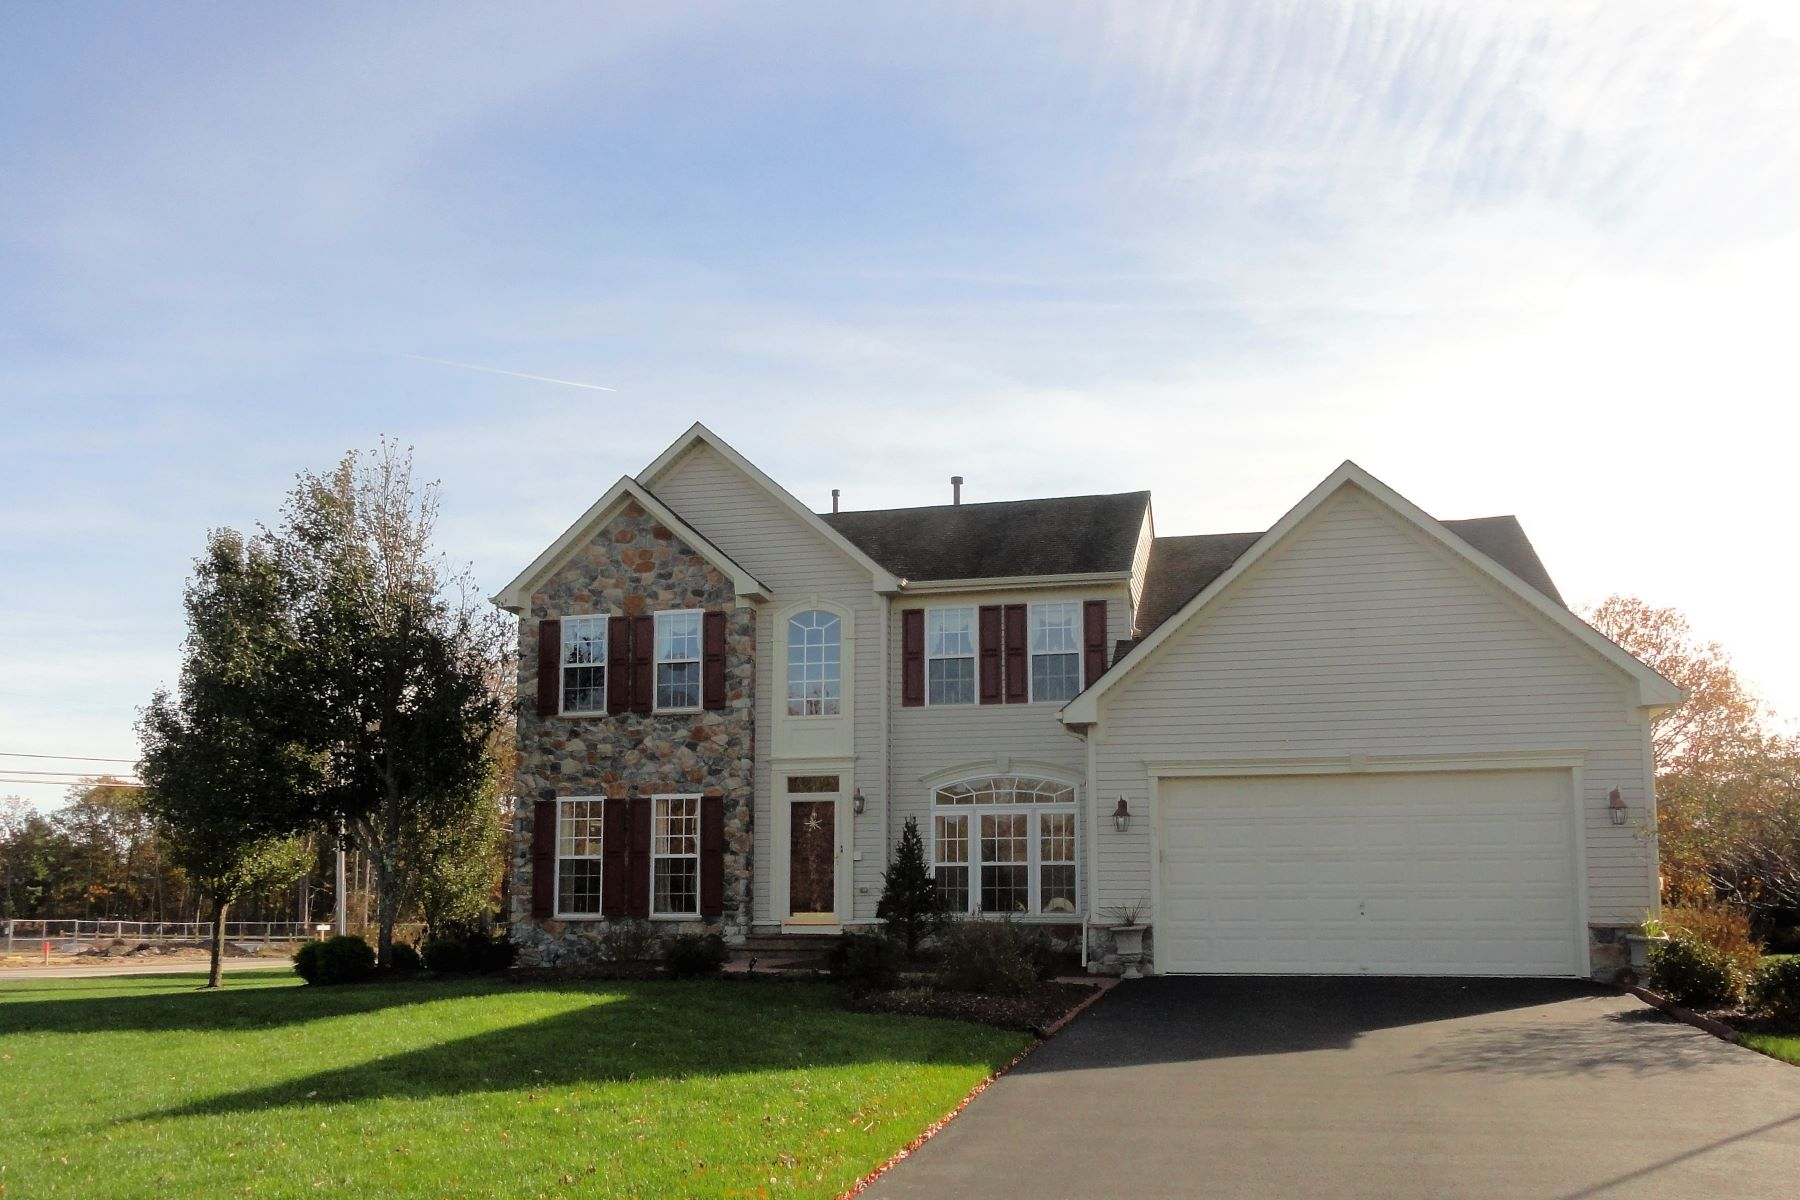 Single Family Home for Sale at 1 Tally Ho 1 Tally Ho Road, Cape May Court House, New Jersey 08210 United States